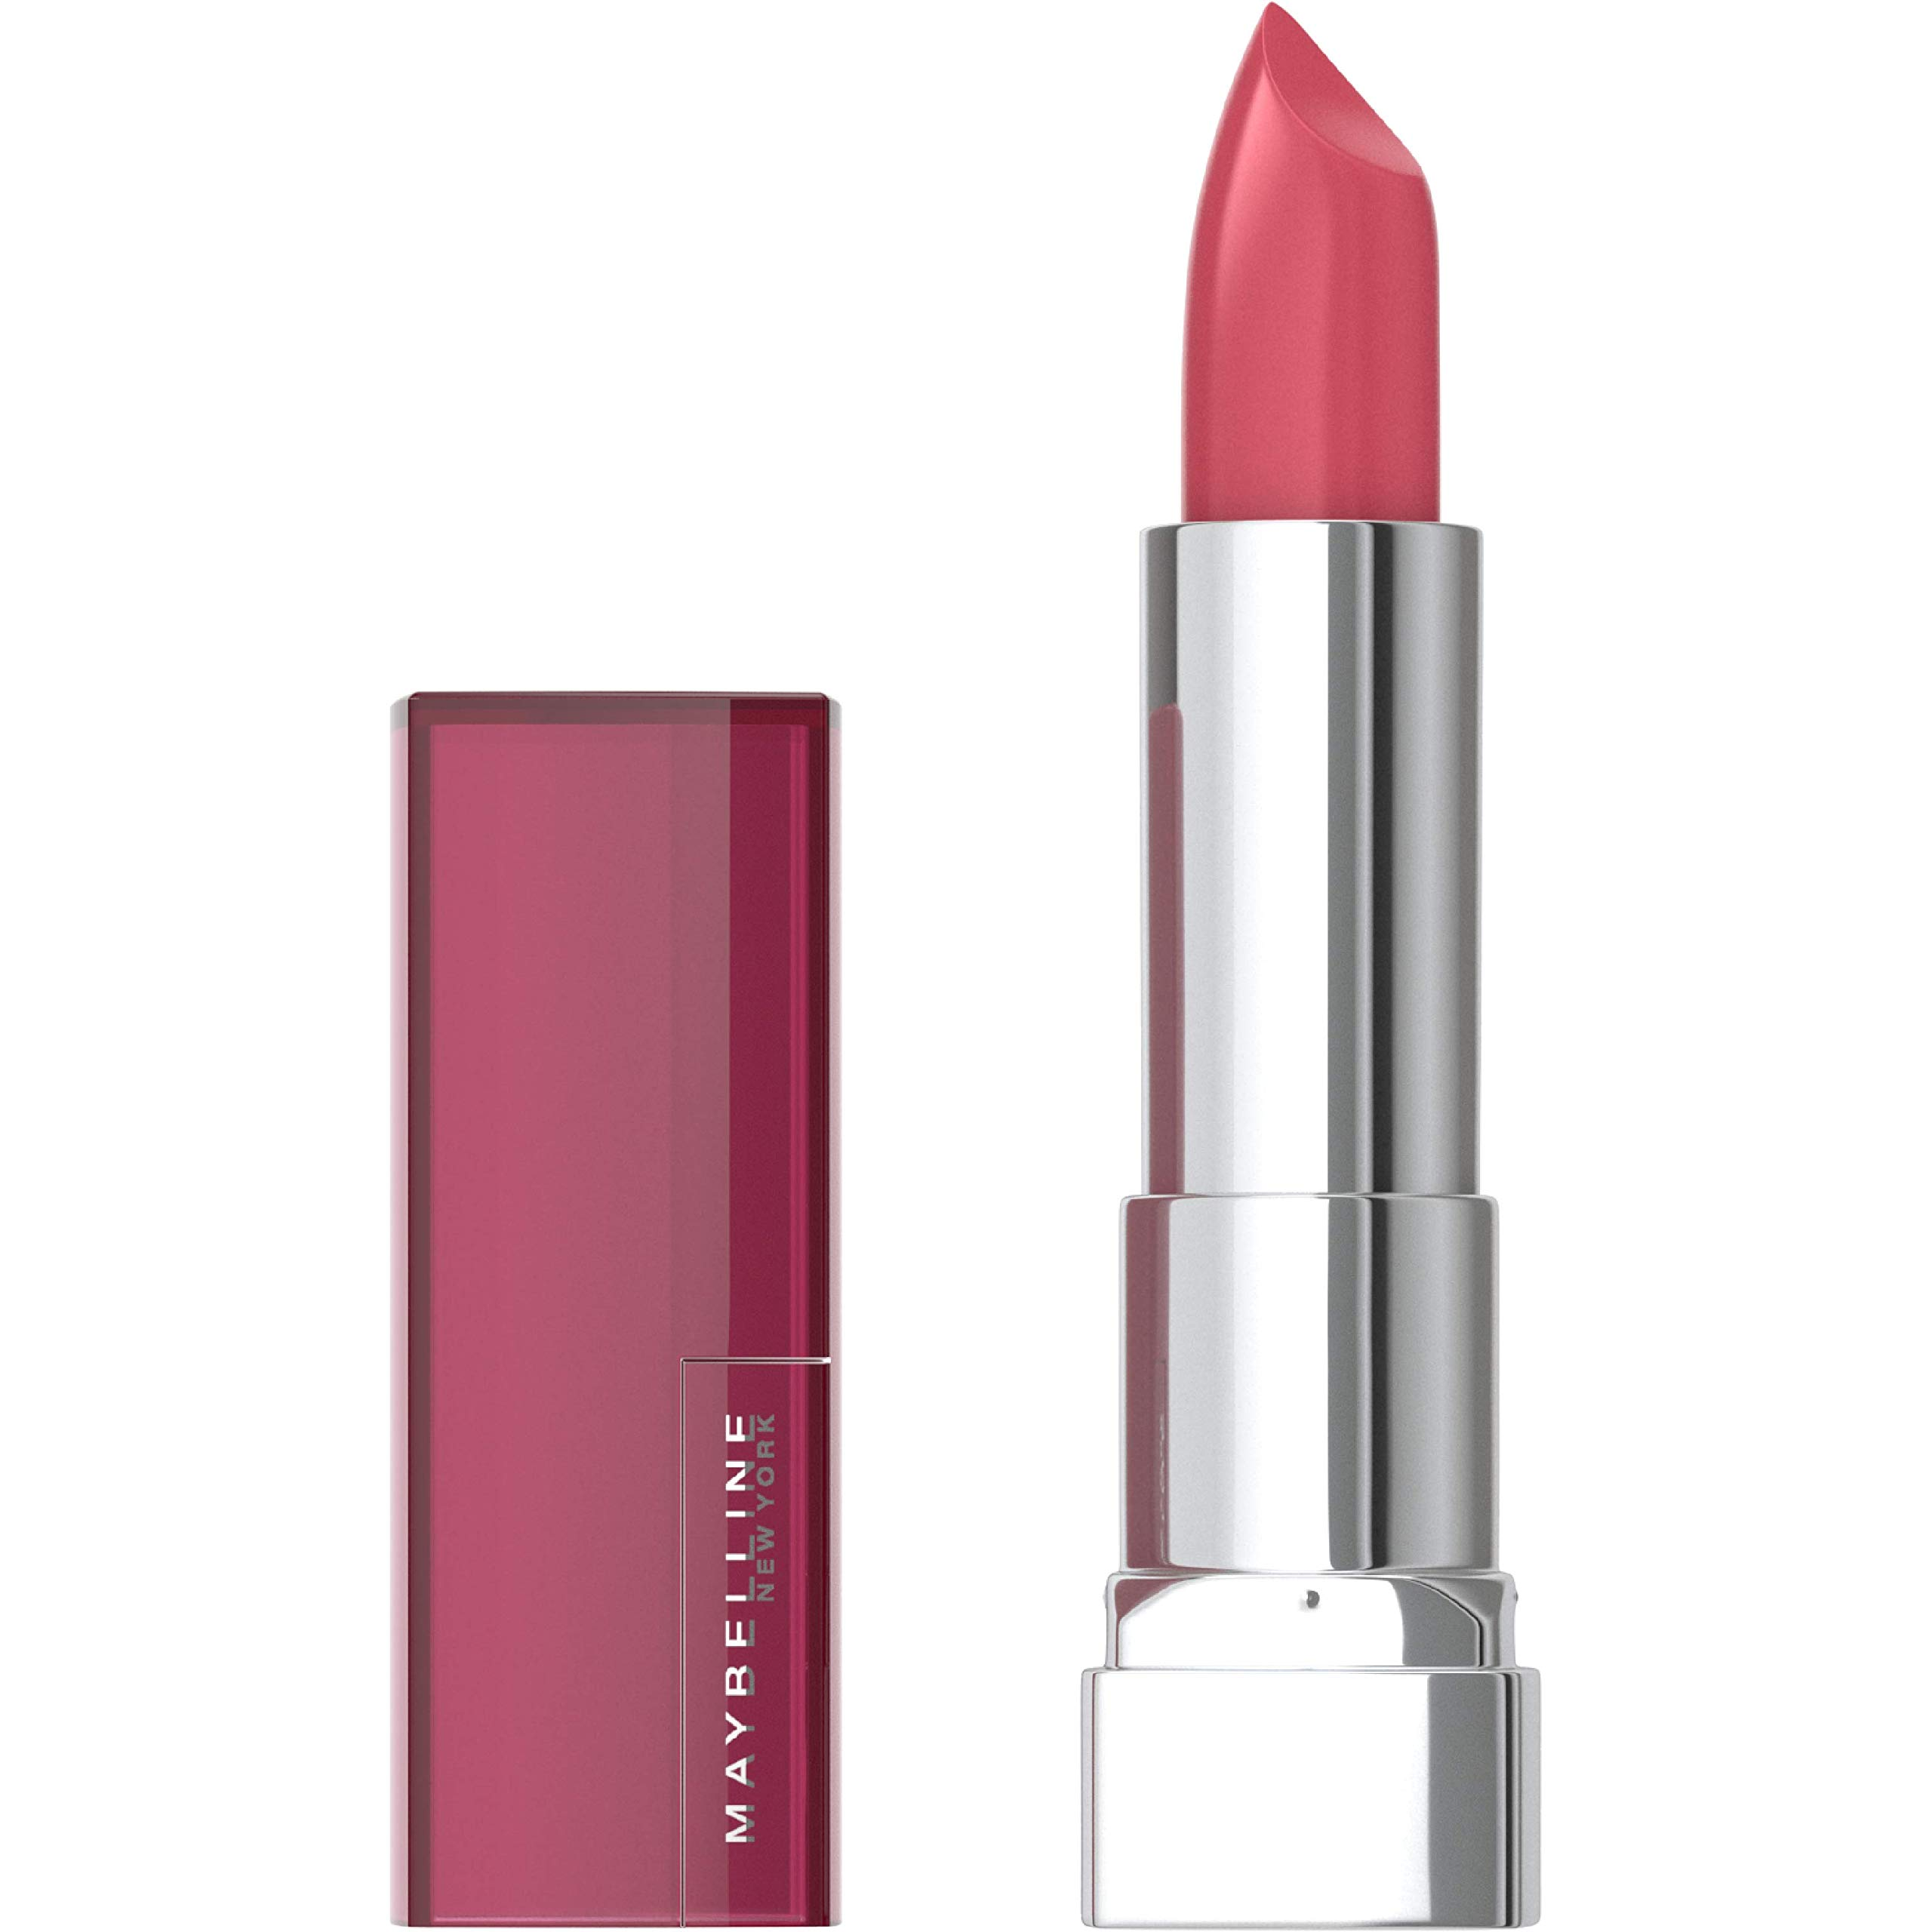 Maybelline Color Sensational Lipstick, Lip Makeup, Cream Finish, Hydrating Lipstick, Nude, Pink, Red, Plum Lip Color, Pink Wink, 0.15 oz; (Packaging May Vary)